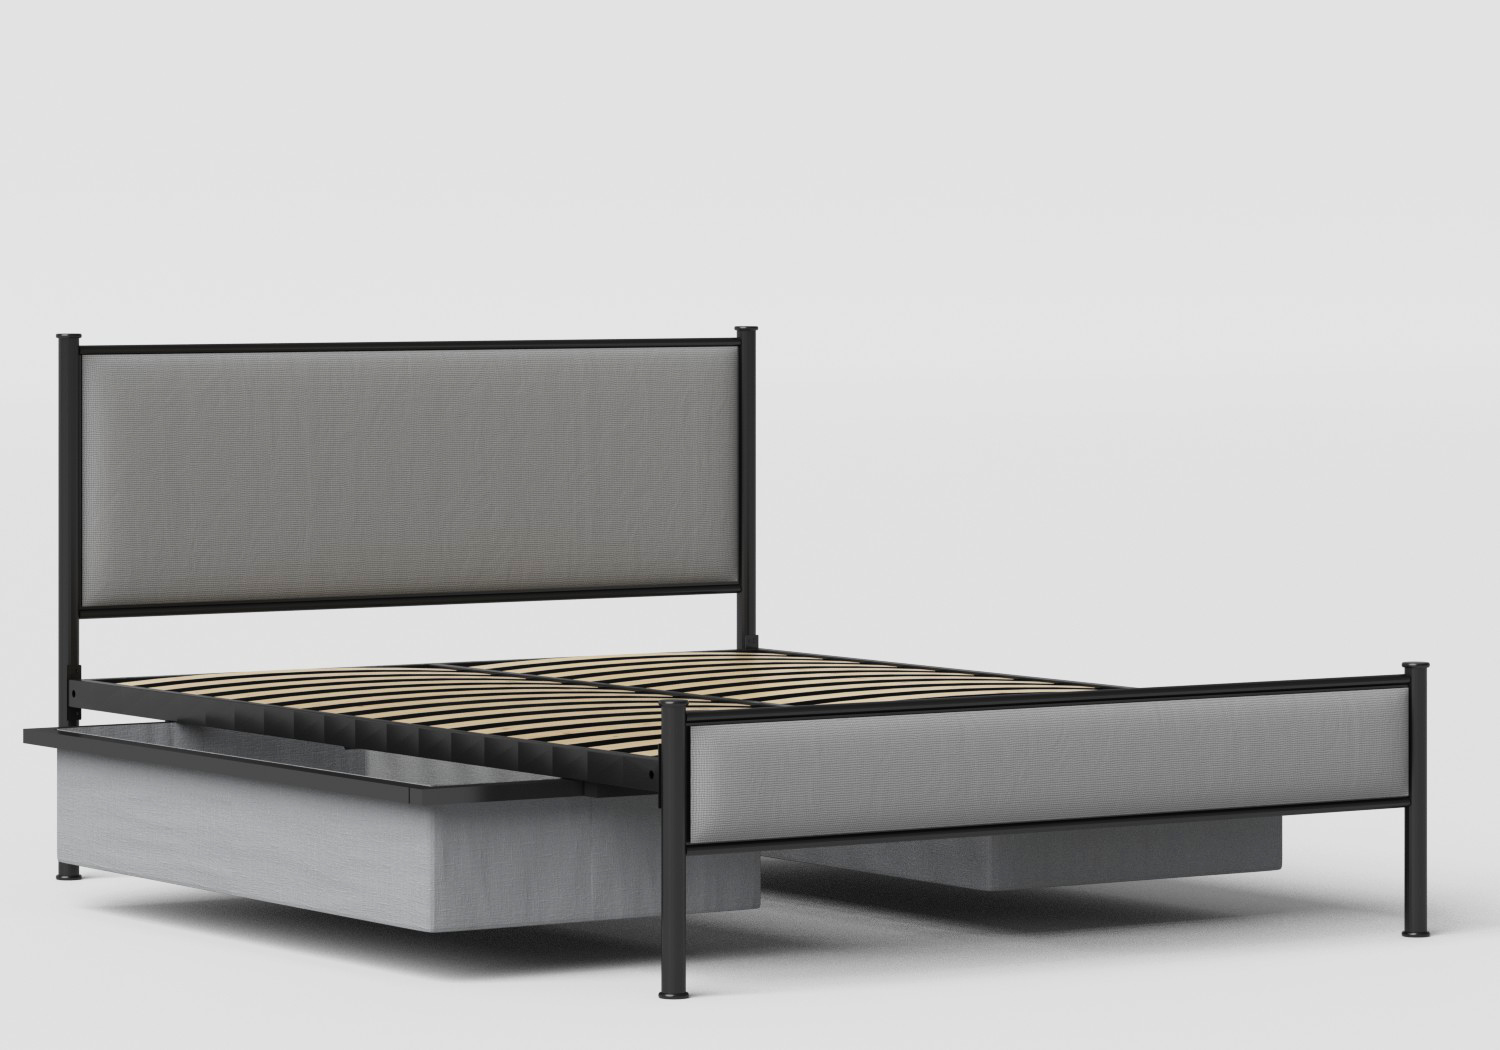 Brest Iron/Metal Upholstered Bed in Satin Black with Grey Fabric shown with underbed storage